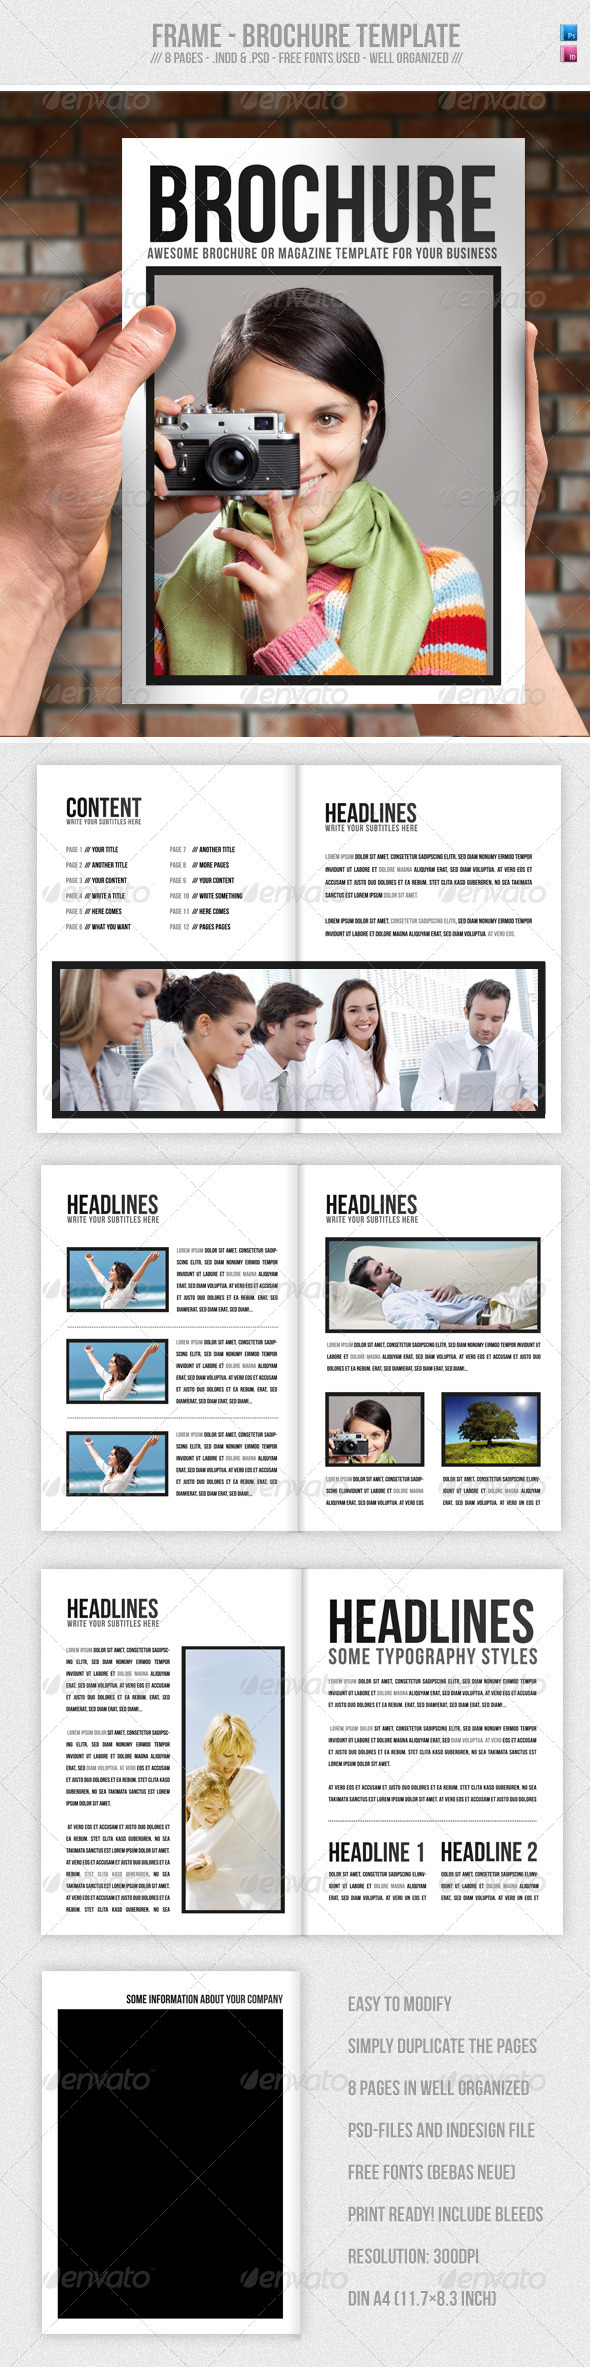 Frame - Brochure / Presentation Template  - Corporate Brochures